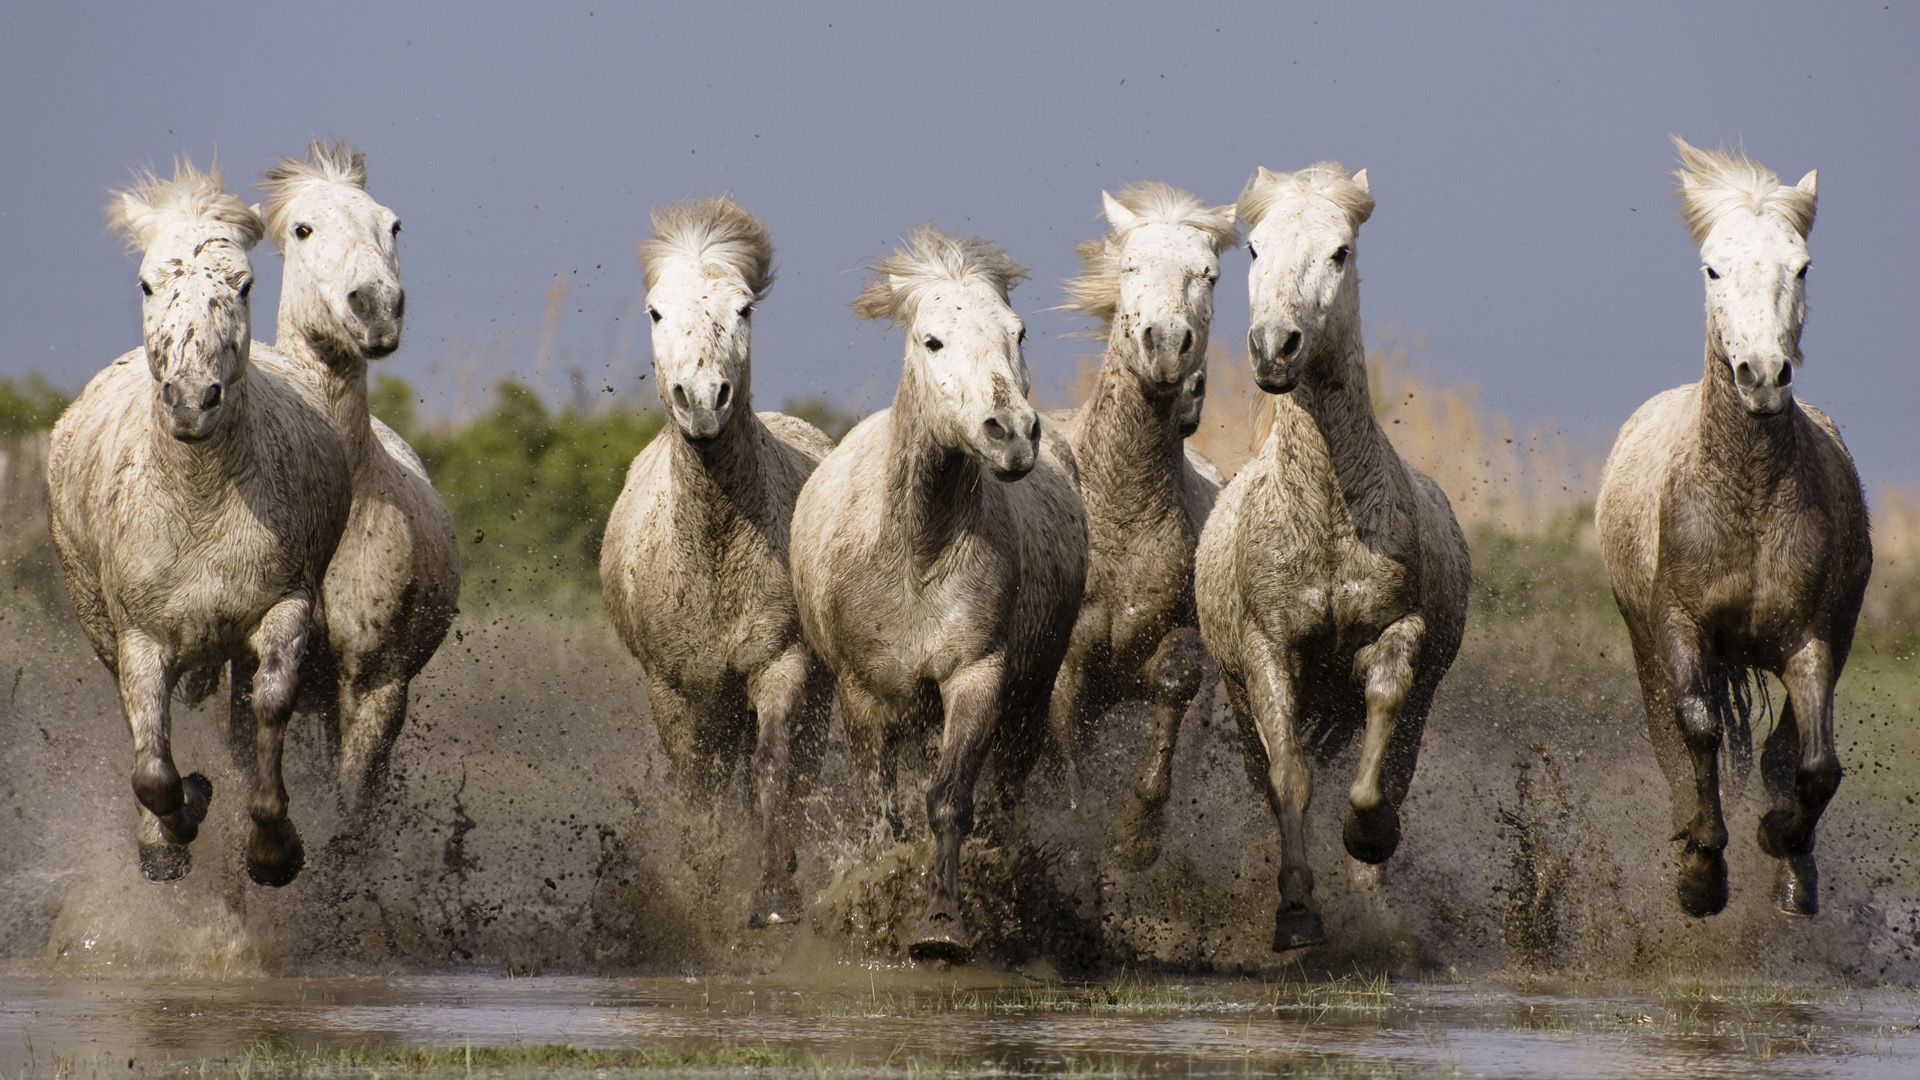 63856 download wallpaper Animals, Horses, Herd, Water, Sea, Shore, Bank, Spray screensavers and pictures for free